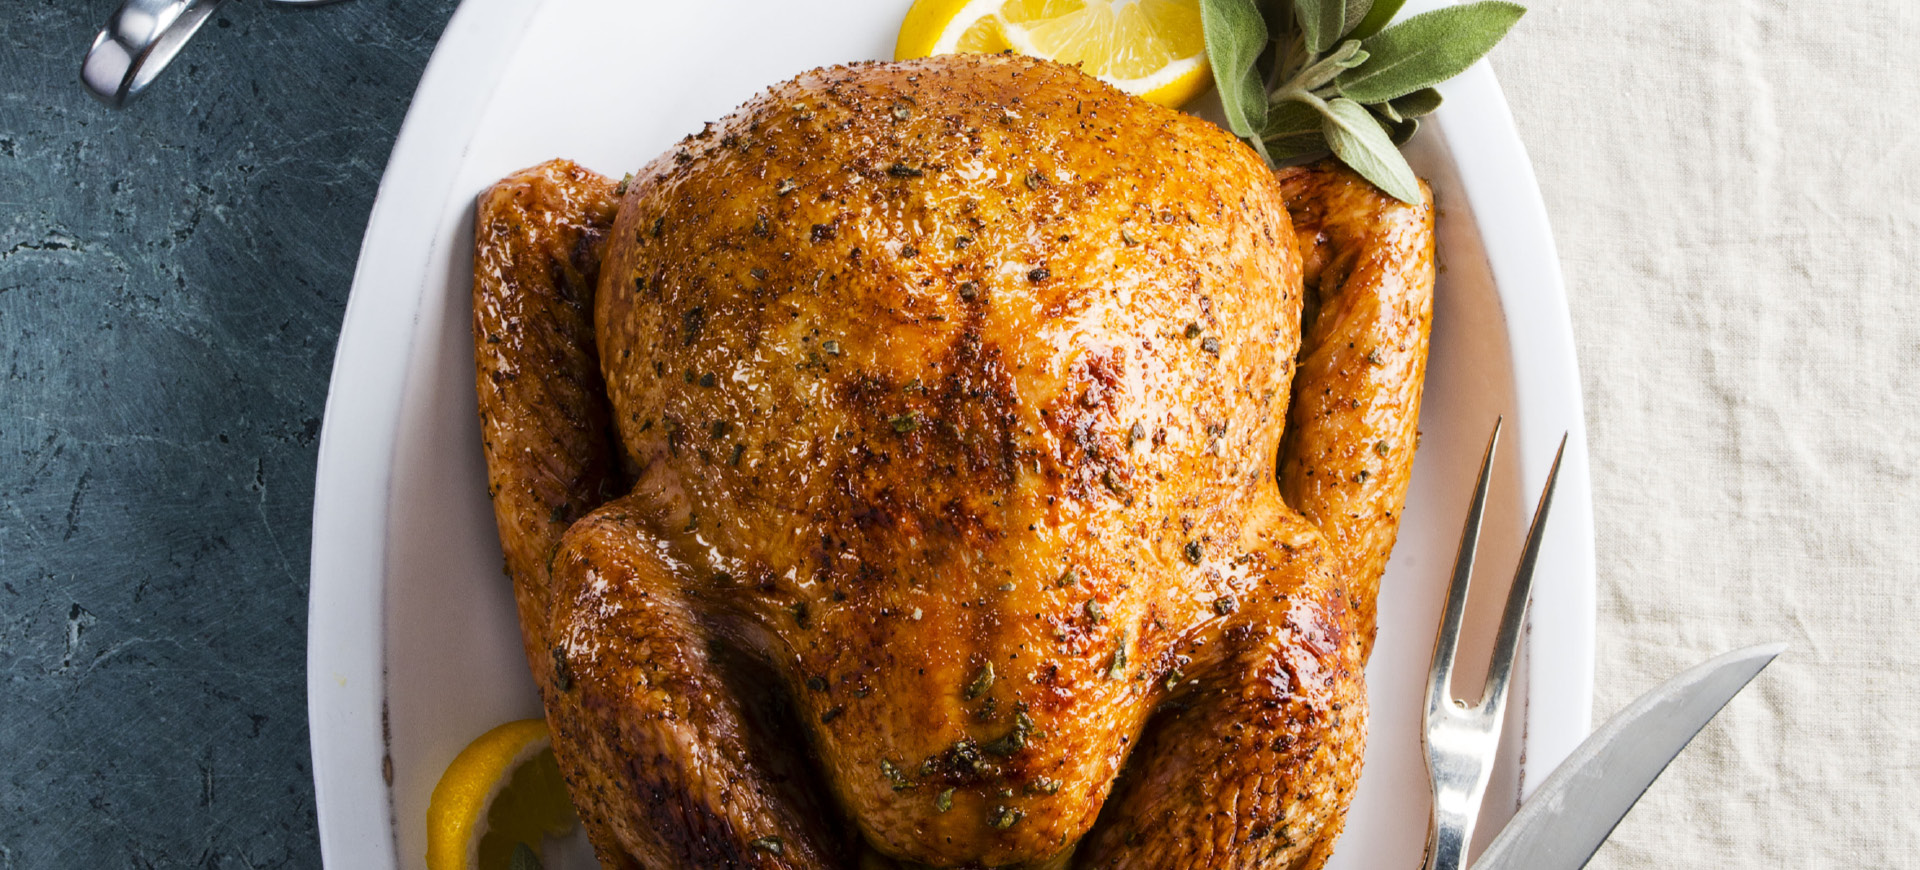 Honey Glazed Roasted Turkey